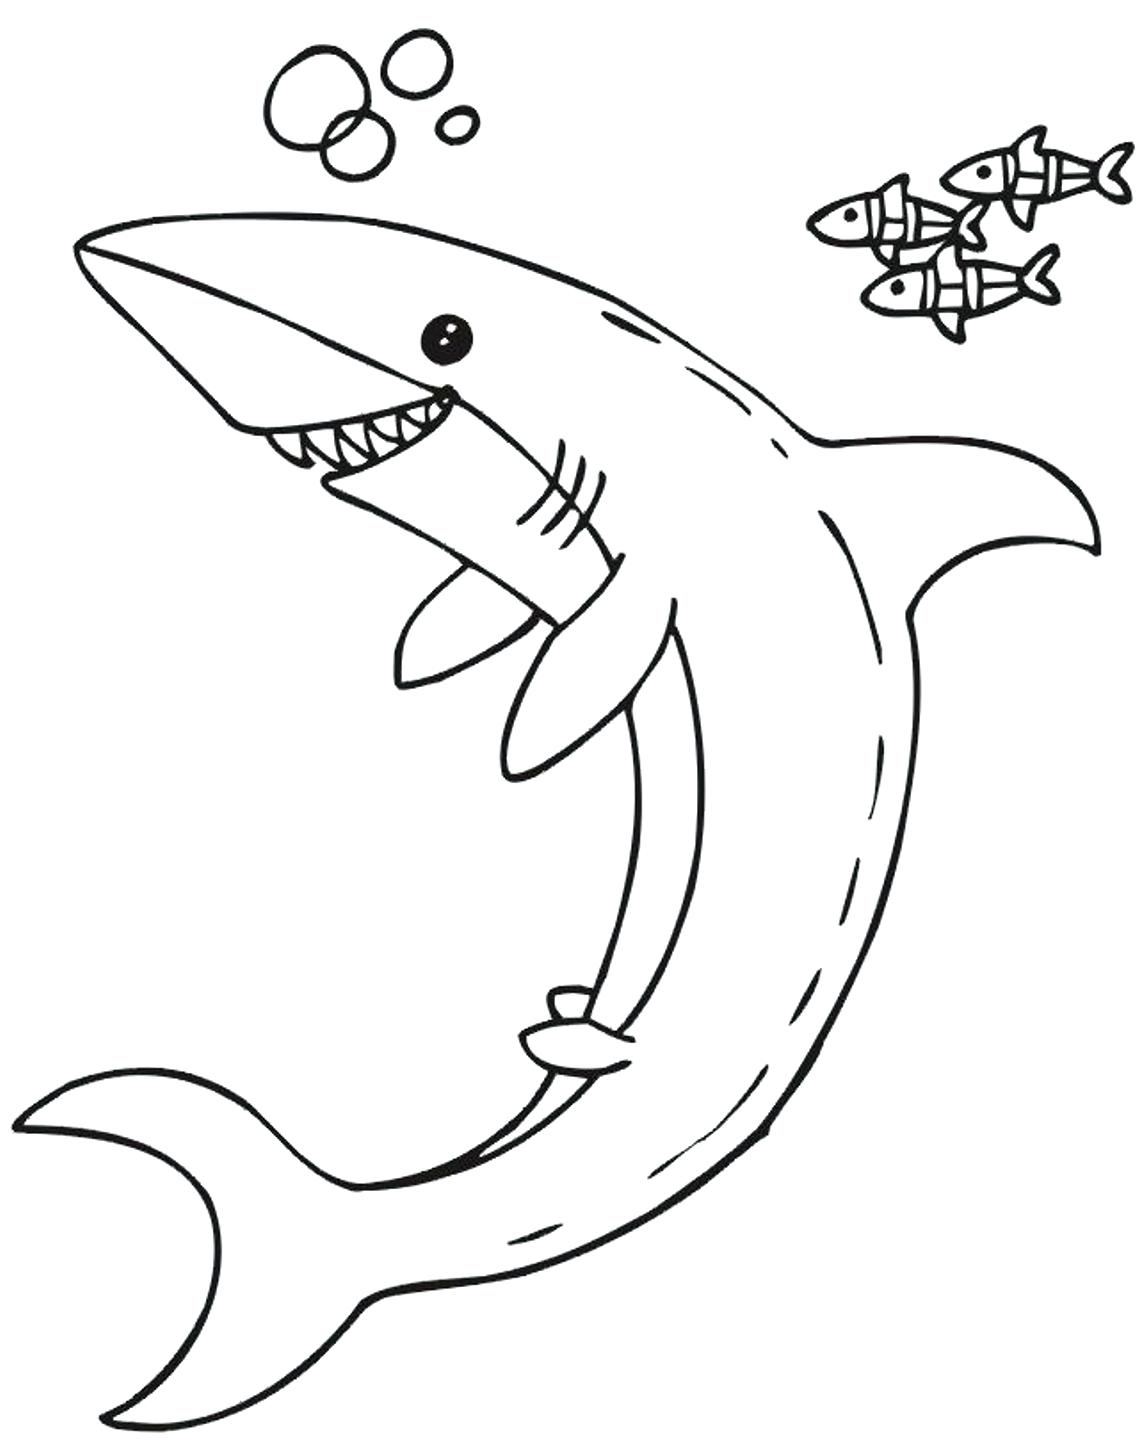 1146x1451 Coloring Hammerhead Shark Coloring Page Kids Pages Free